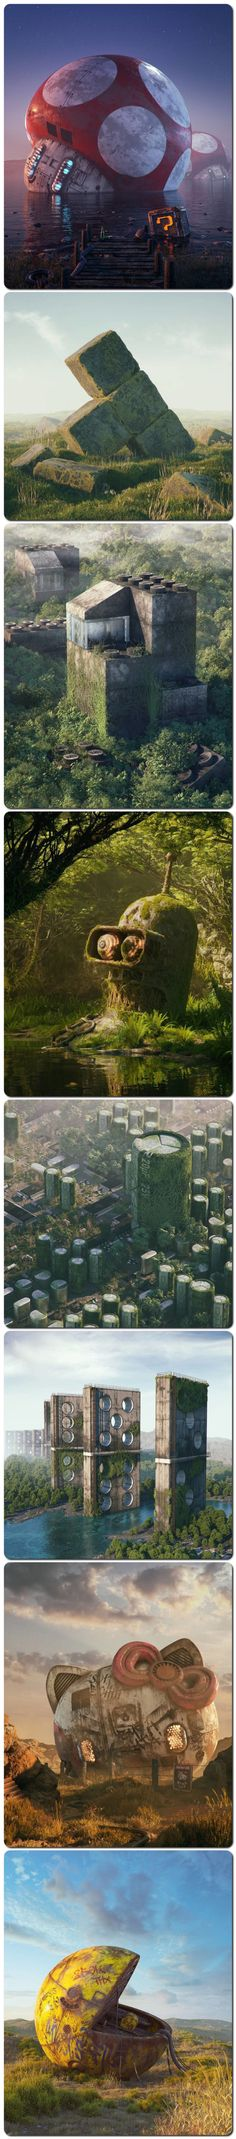 The Apocalypse Of Pop Culture By Filip Hodas - Dehily Geek Culture, Pop Culture, Best Funny Pictures, Cool Pictures, Writing Art, Environment Design, Cultura Pop, Japanese Artists, Digital Illustration